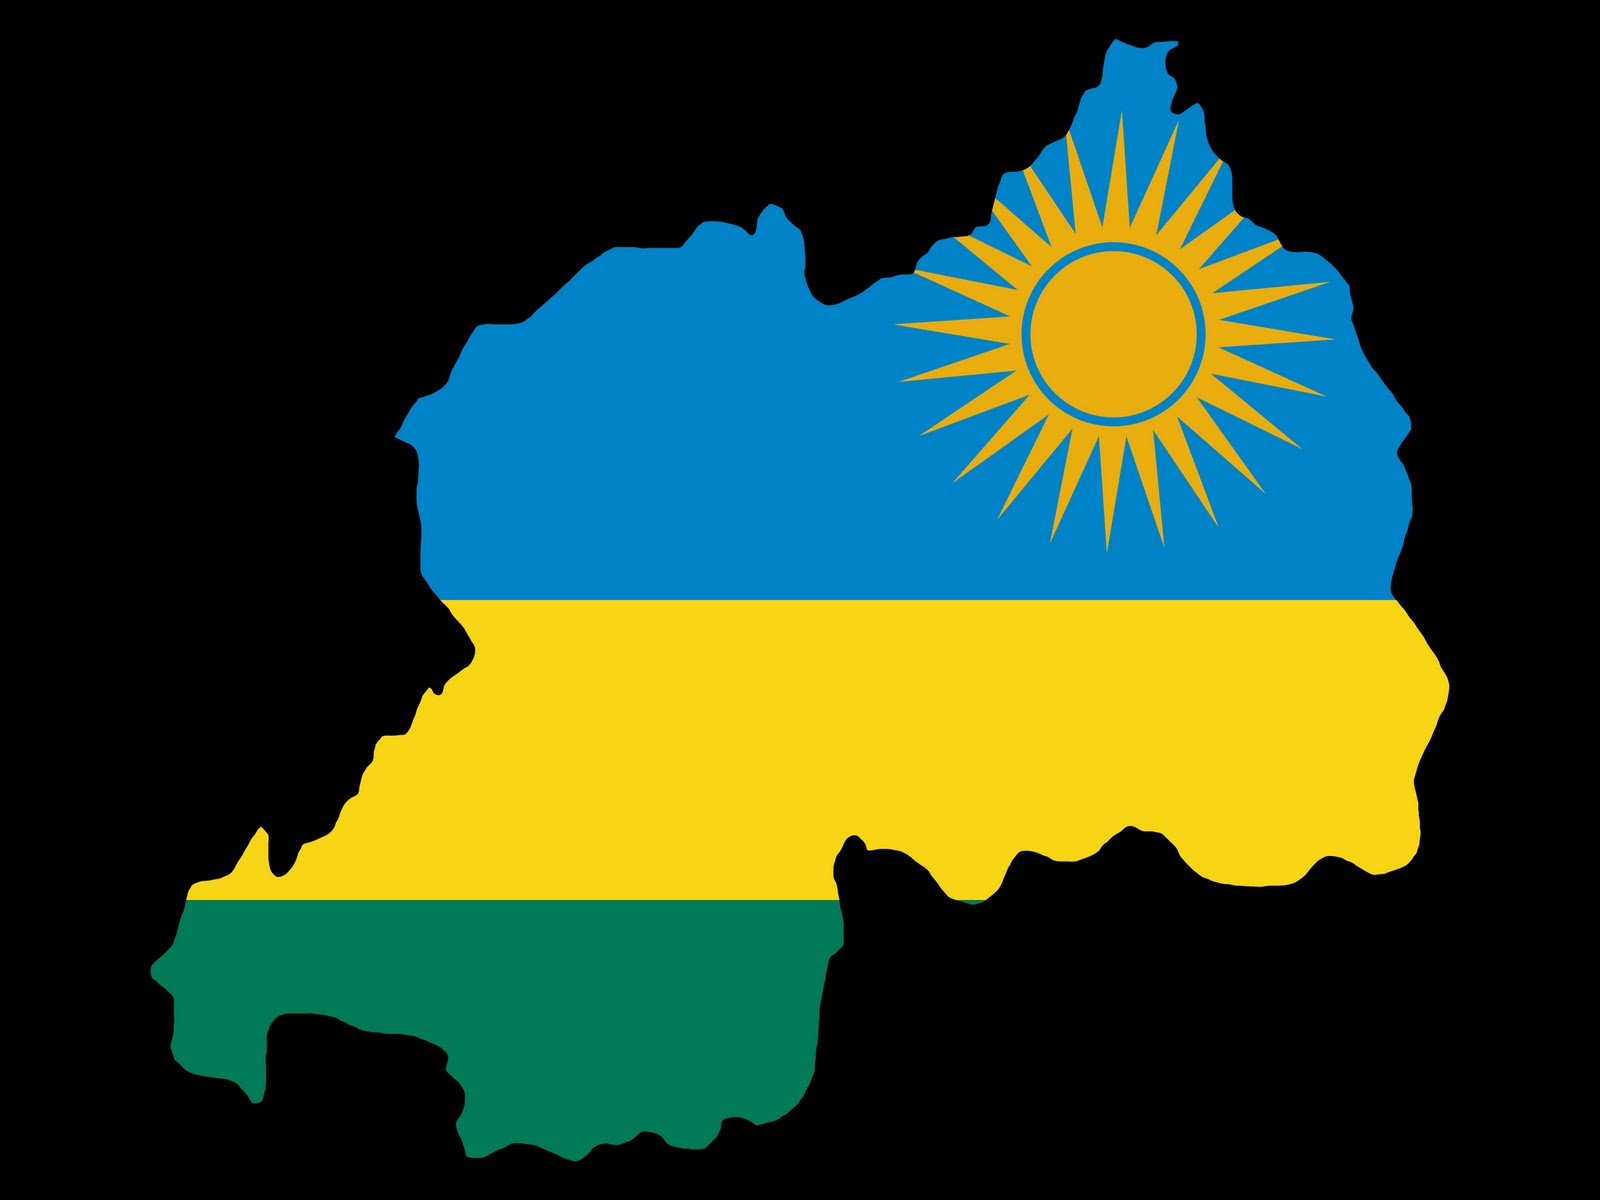 Imagehub Rwanda Flag HD Download 1600x1200